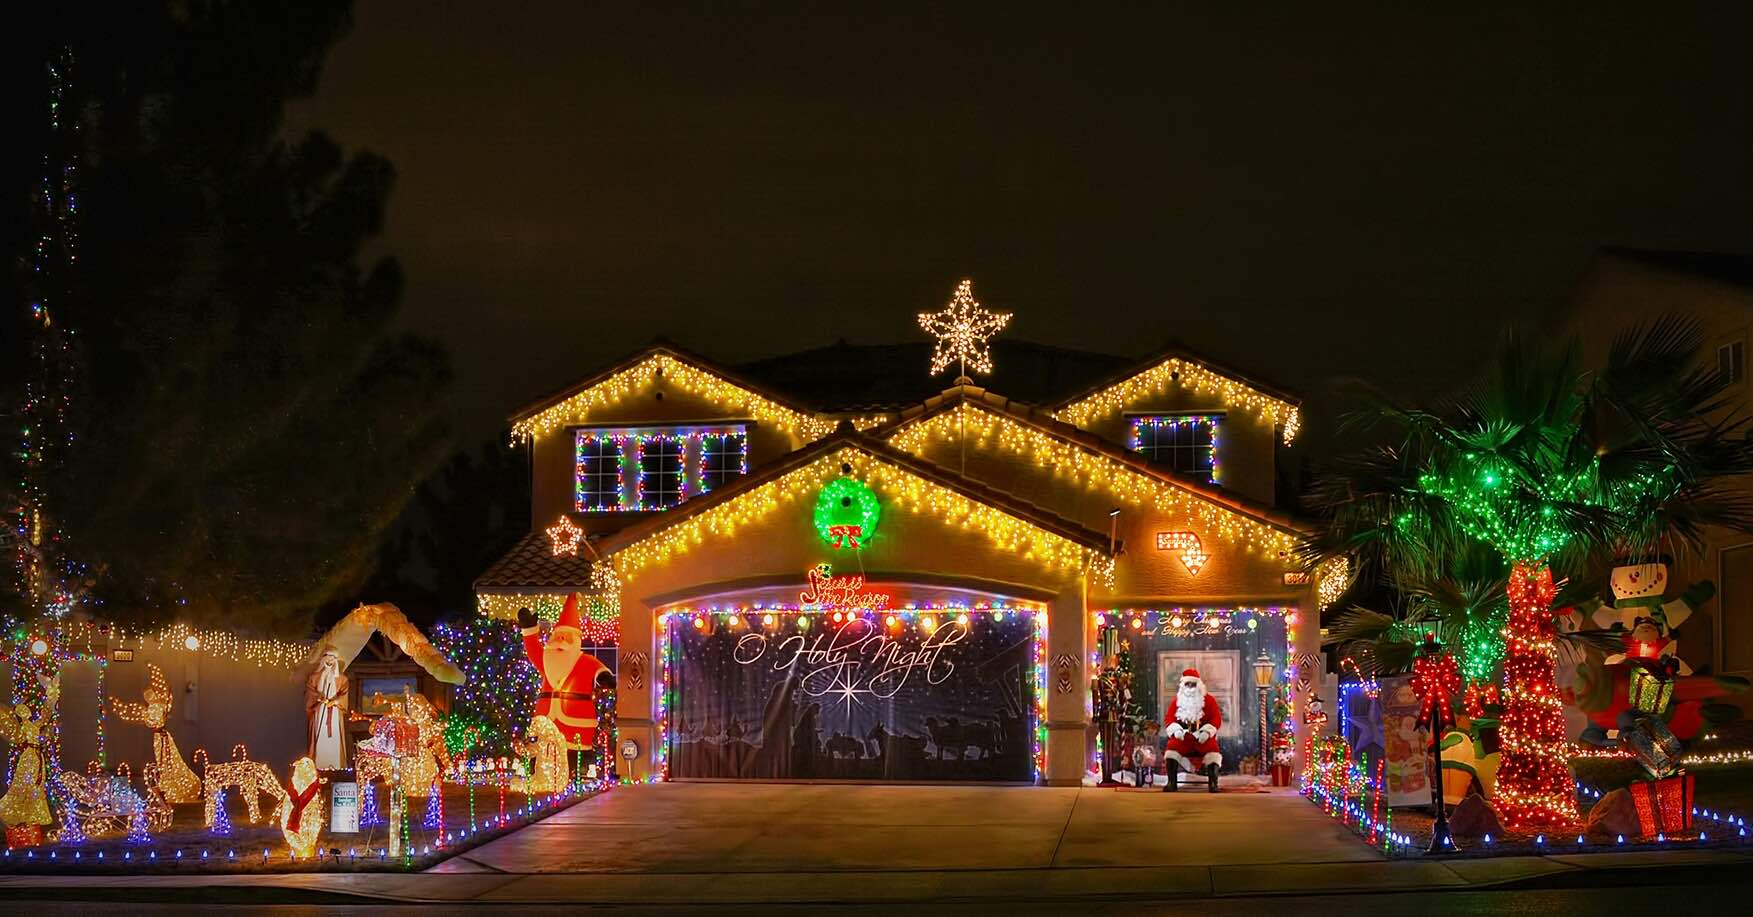 3018 Scenic Valley Way, Henderson NV 89052 offers Christmas Lights Show